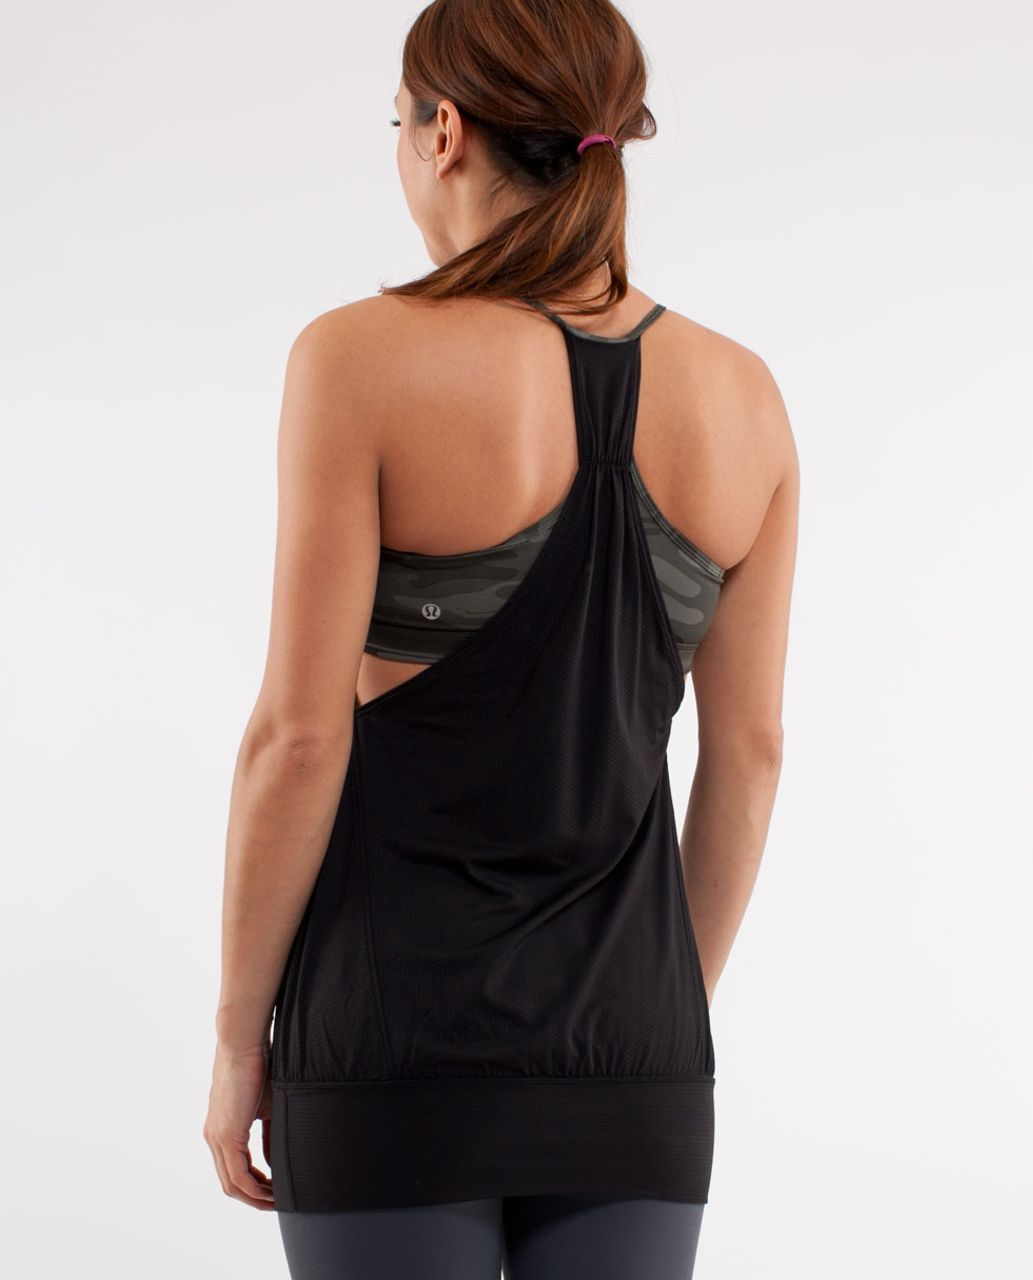 c6ae990e549 Lululemon No Limit Tank - Wren / Retro Camo - lulu fanatics